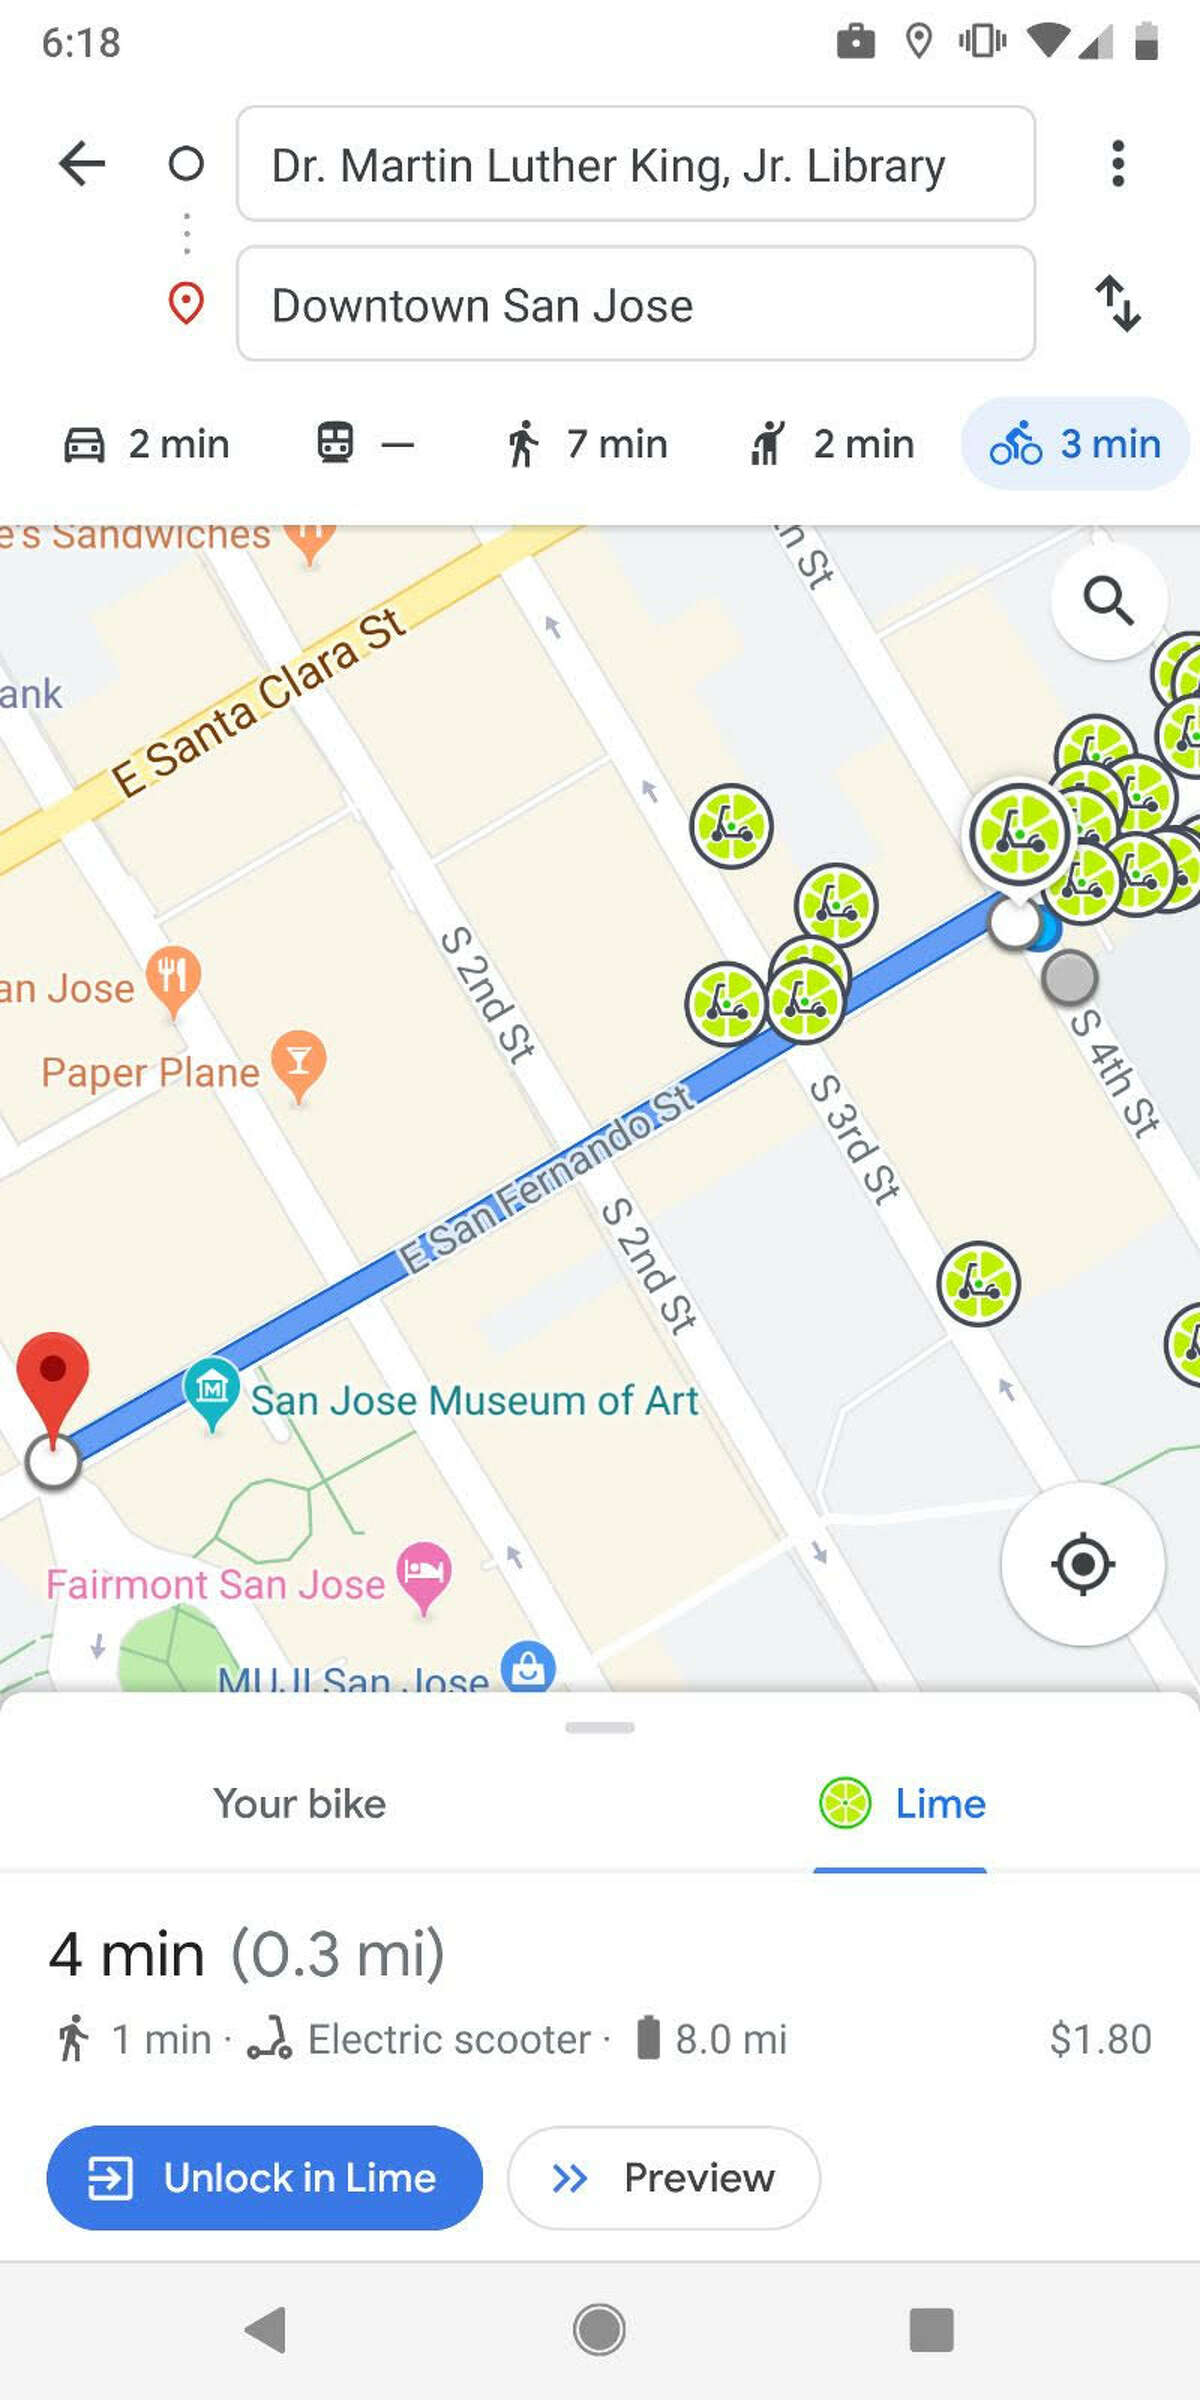 Google Maps is teaming up with Lime to show cell phone users where they can find available Lime scooters.